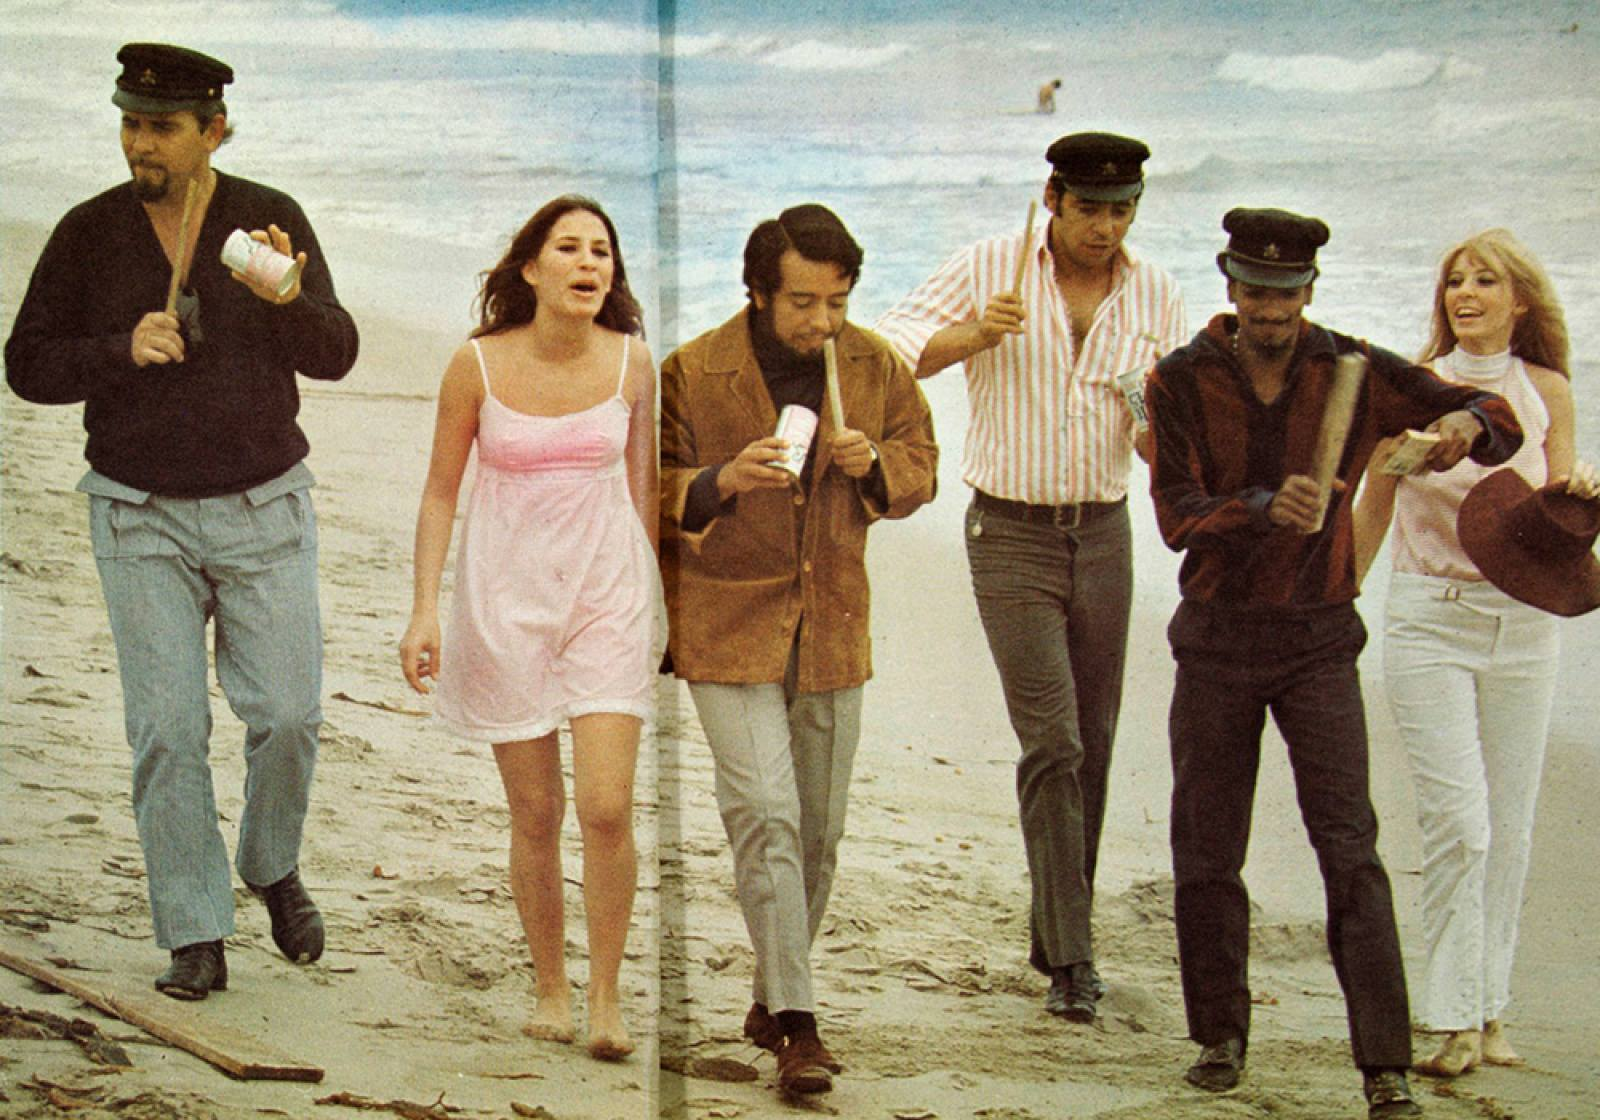 PHOTO 8 - Sergio Mendes & Brasil 66 - Beach